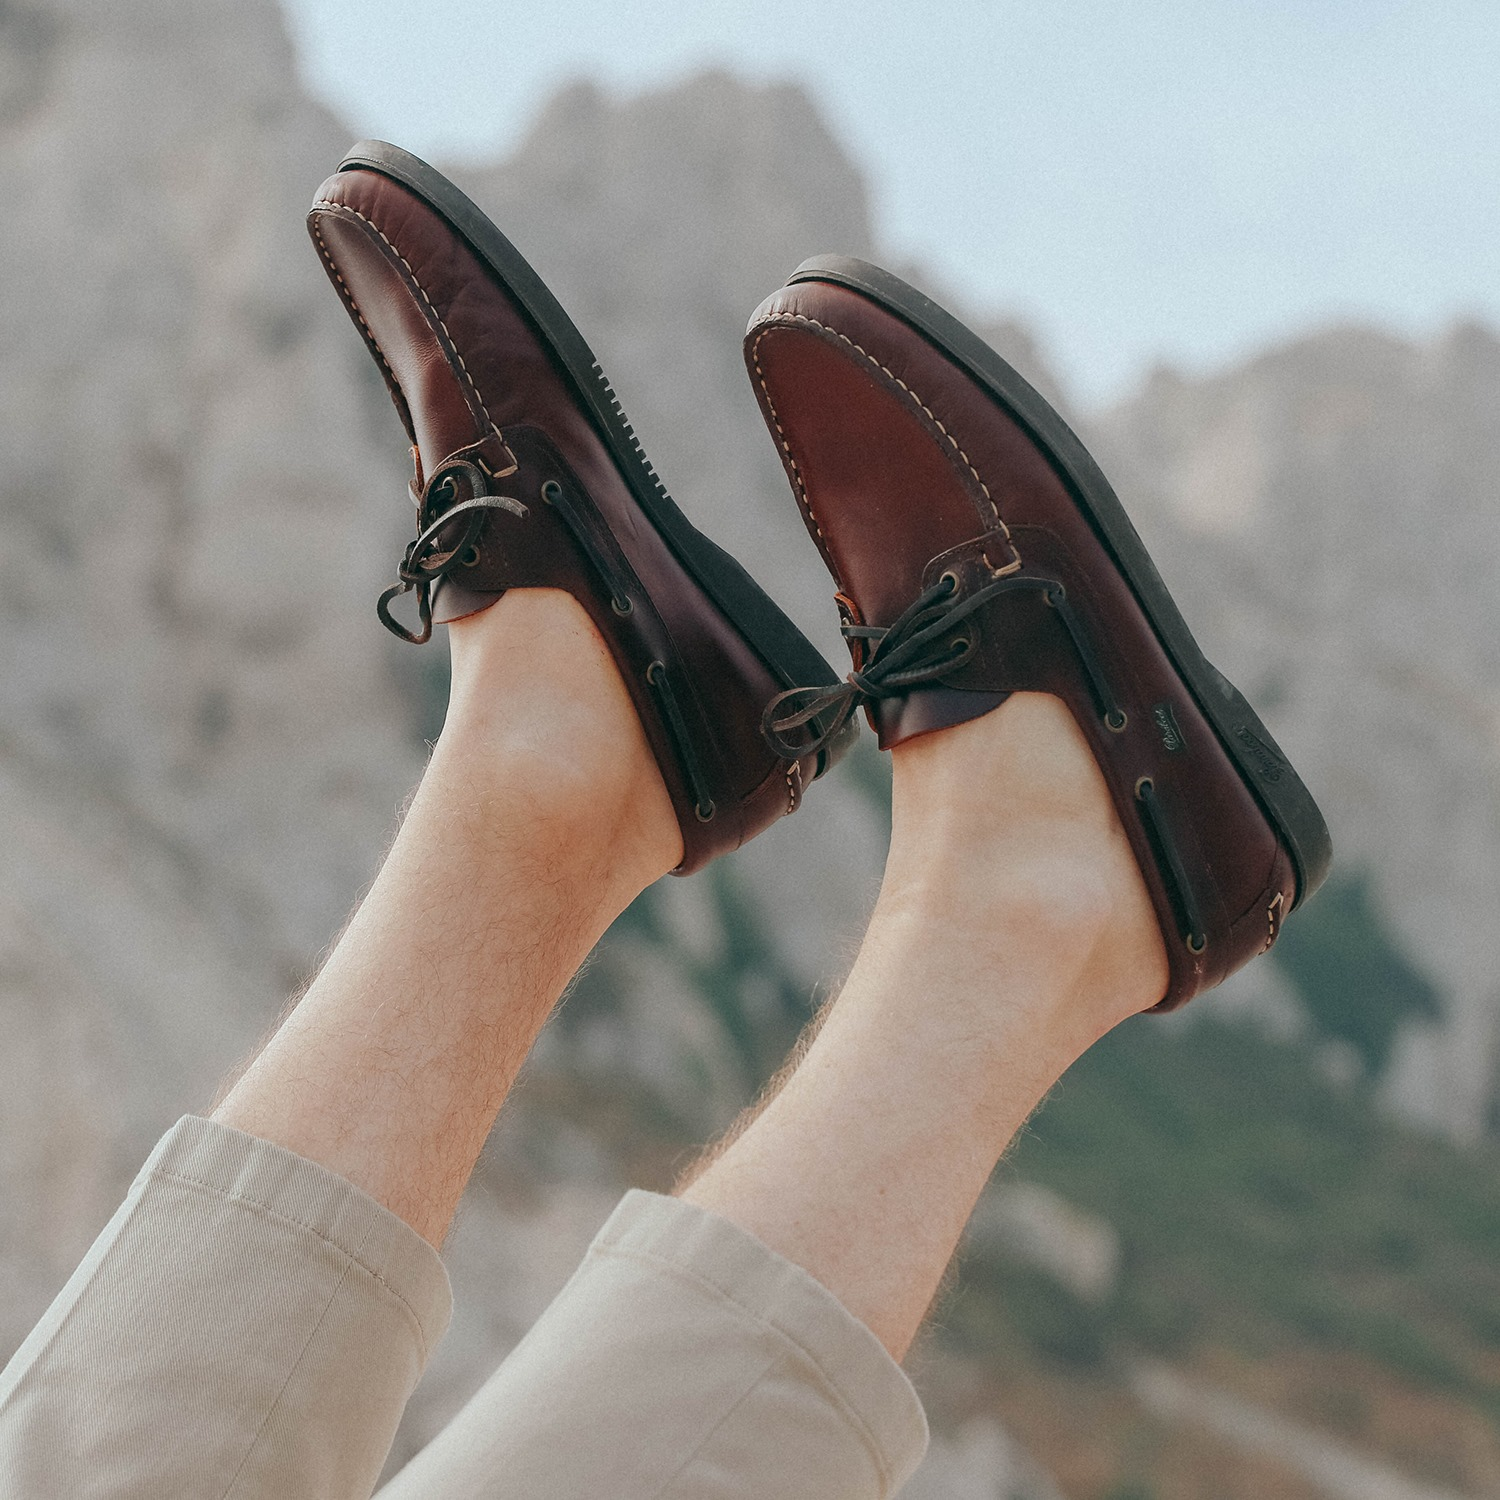 Paraboot boat shoes